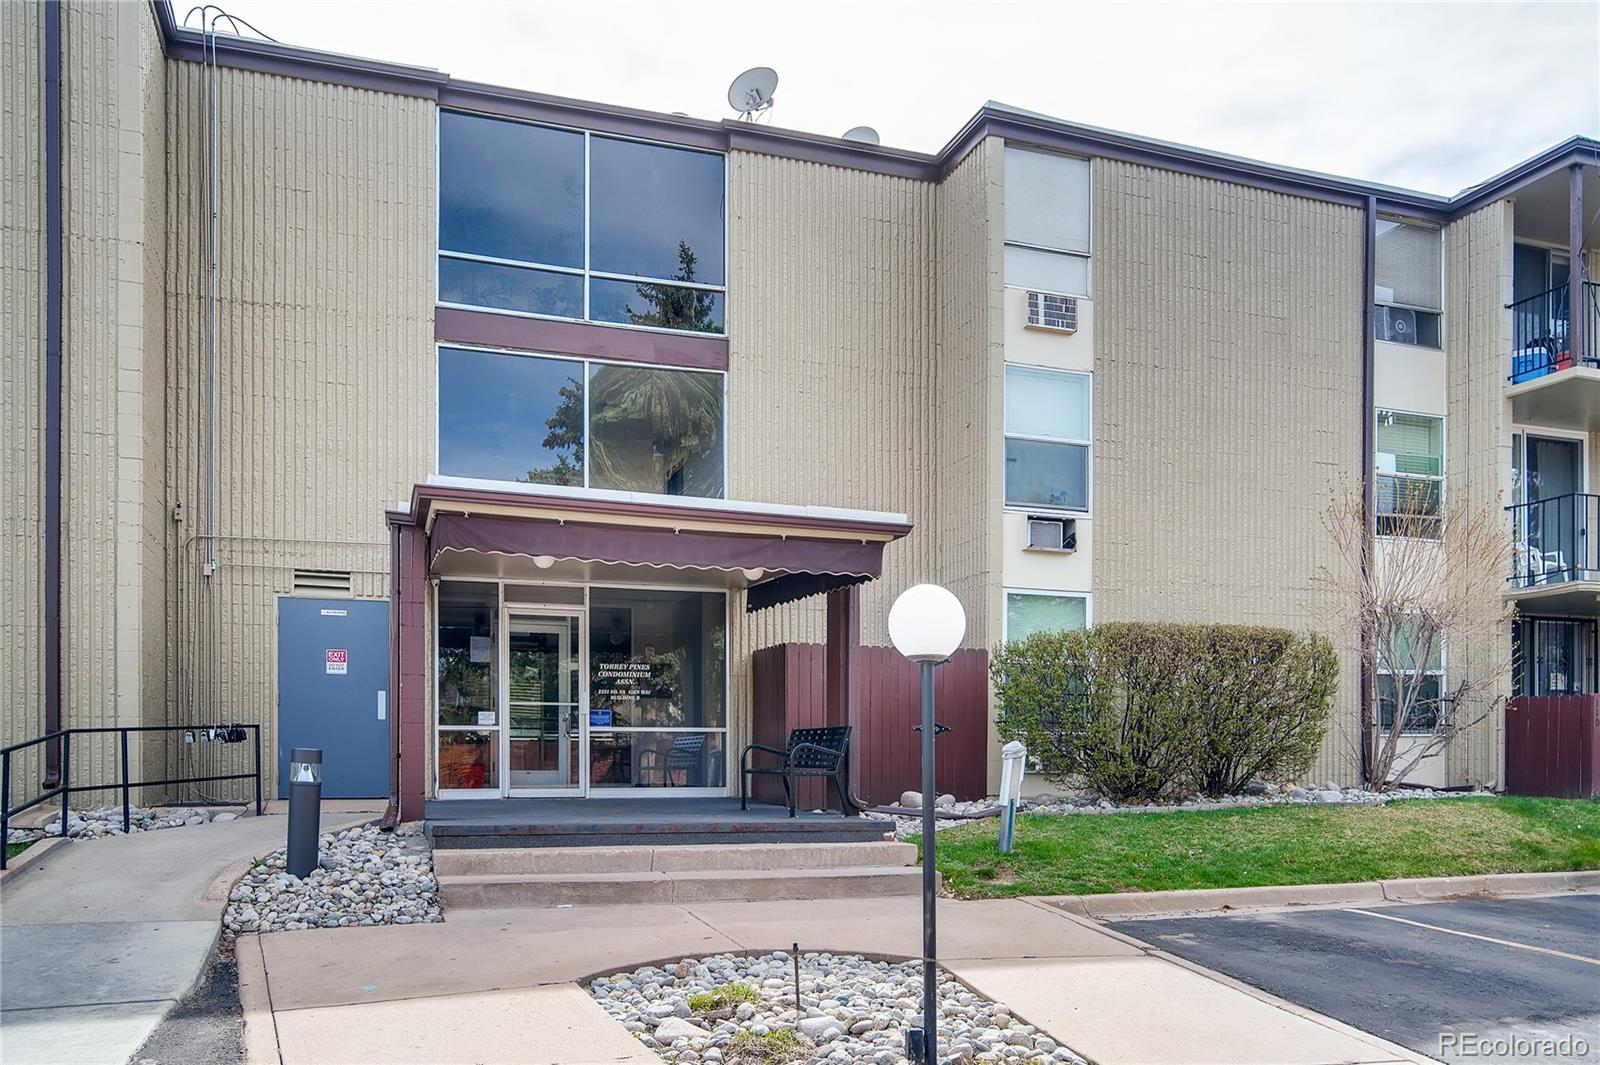 Affordable and centrally located condo in the Cherry Creek school district.  Can be investment property as well. Long term rentals allowed. 2 bedrooms, 2 baths.  Ceiling fan in 2nd  bedroom room. Balcony faces west, so you get to gaze at Colorado's beautiful sunsets. Refrigerator is 7 months old.  Kitchen was remodeled in 2013. HEAT IS INCLUDED IN THE HOA! One pet per unit is allowed, medium size. This property will be part of a 1031 Exchange with no detriment to the buyer. Parking is accessible and close to the unit.  Entry closest to Iliff gives you quick access up the stairs to the unit.  Common grounds with pool and picnic area offer a great area for summer relaxation. Two months prepaid HOA dues are collected at closing.  Exclusive showings allowed only. . Please be mindful of COVID 19. If anyone in your party is having cold or flu-like symptoms, or has been around anyone with cold or flu-like symptoms, please do not visit at this time.